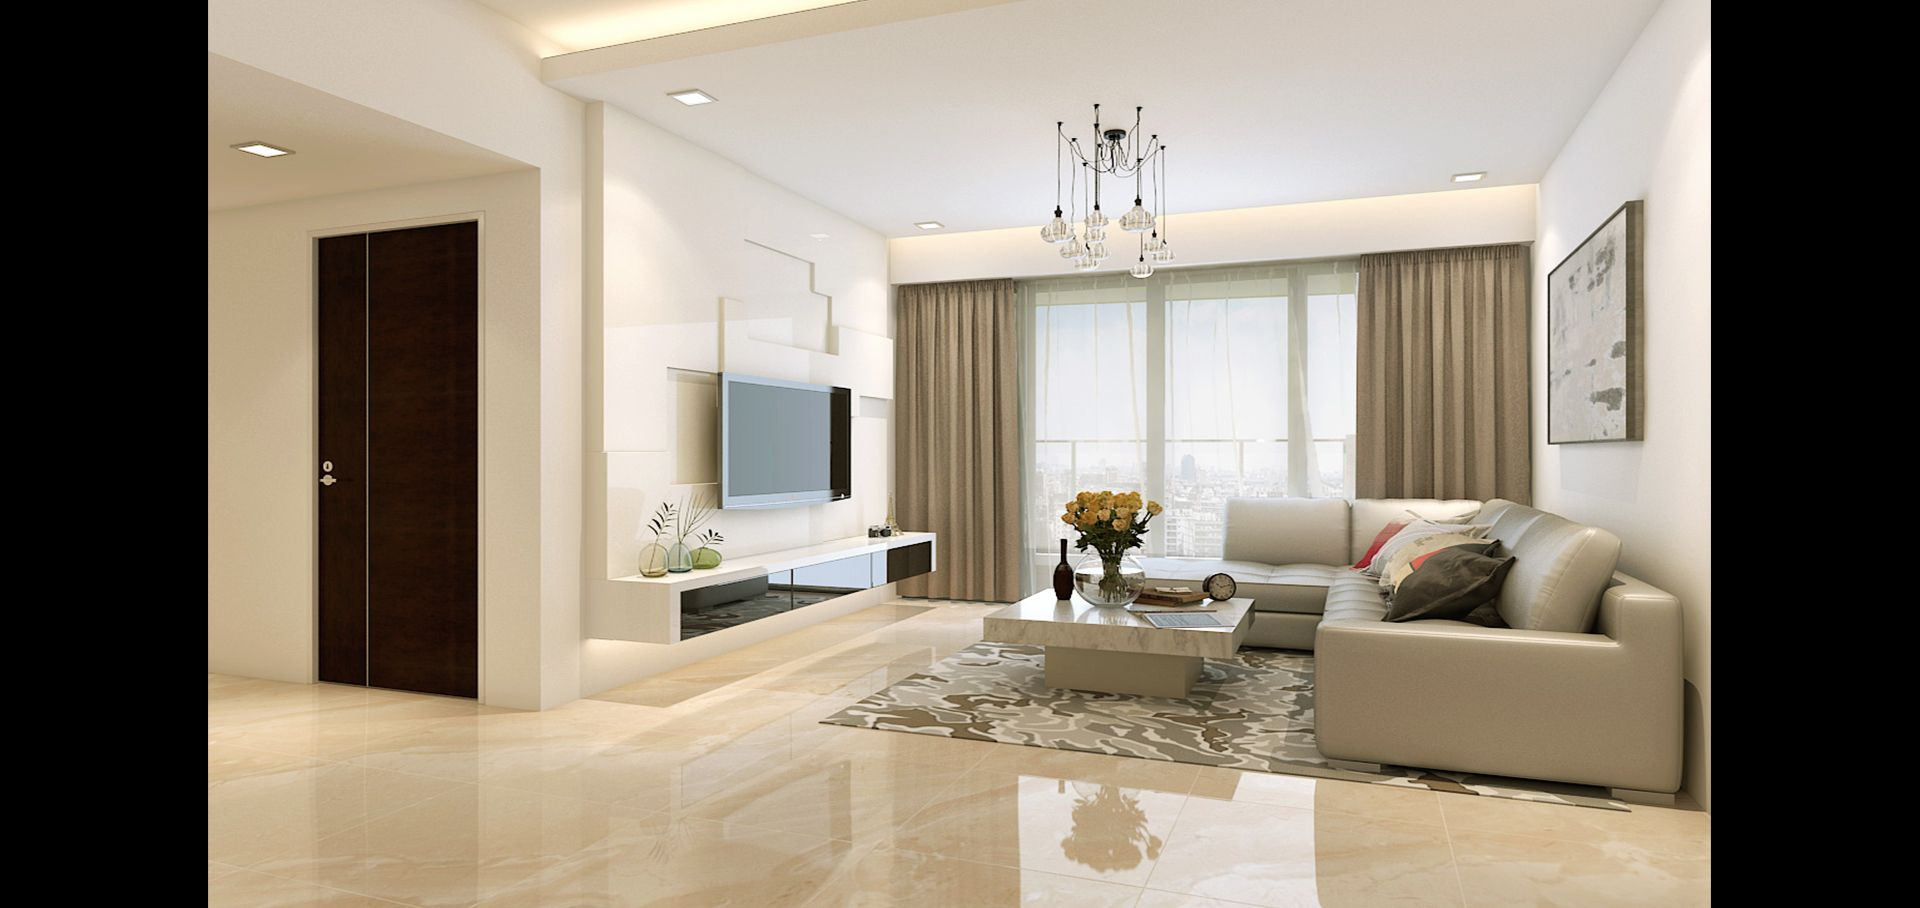 Marble Floors Living Room Beautiful Interior Design White Tv Feature Wall Contrast